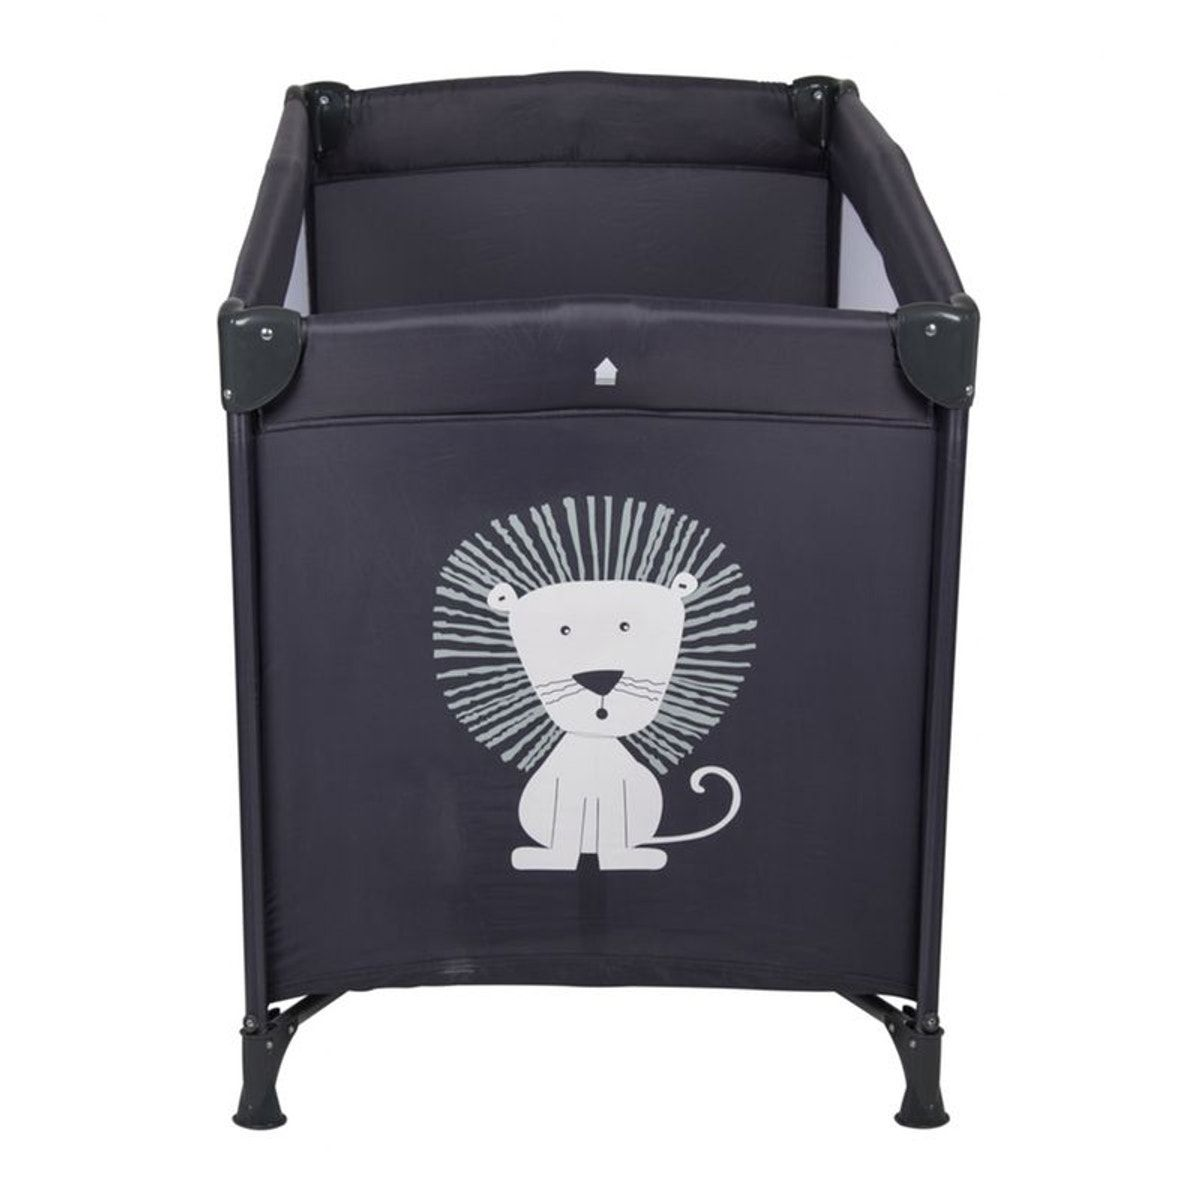 Lit Parapluie Lion Lit Parapluie Parapluie Matelas D Appoint